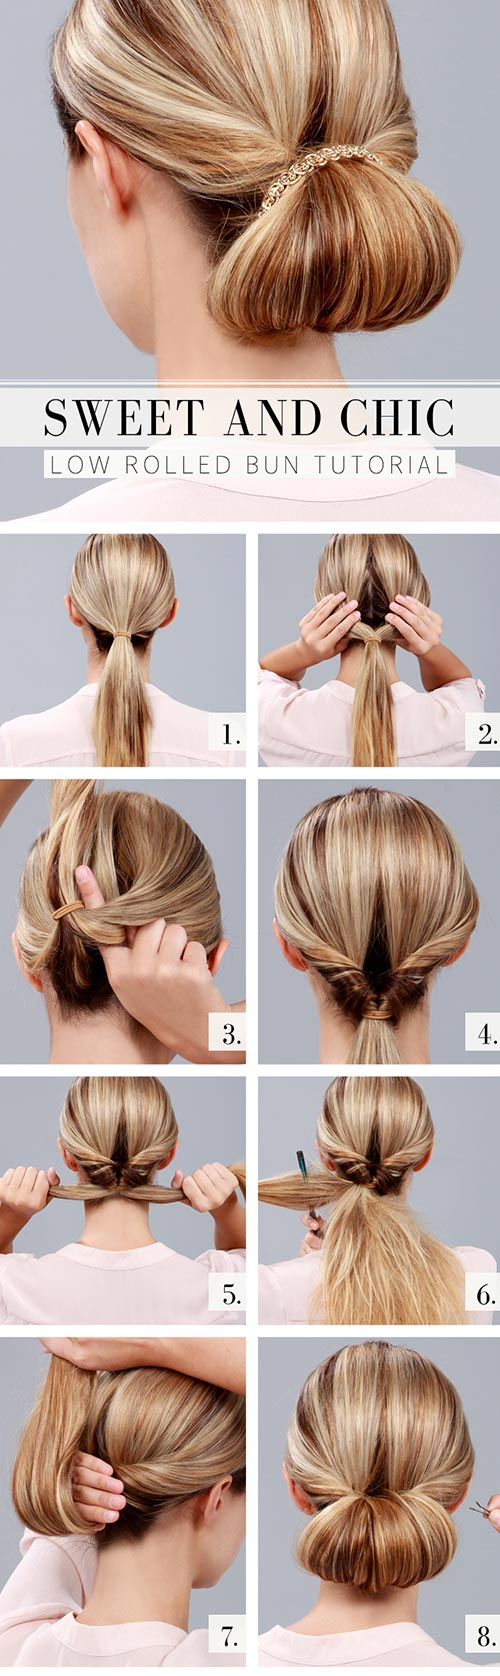 Peachy 12 Easy Hair Tutorials For Pretty Looks Pretty Designs Hairstyle Inspiration Daily Dogsangcom